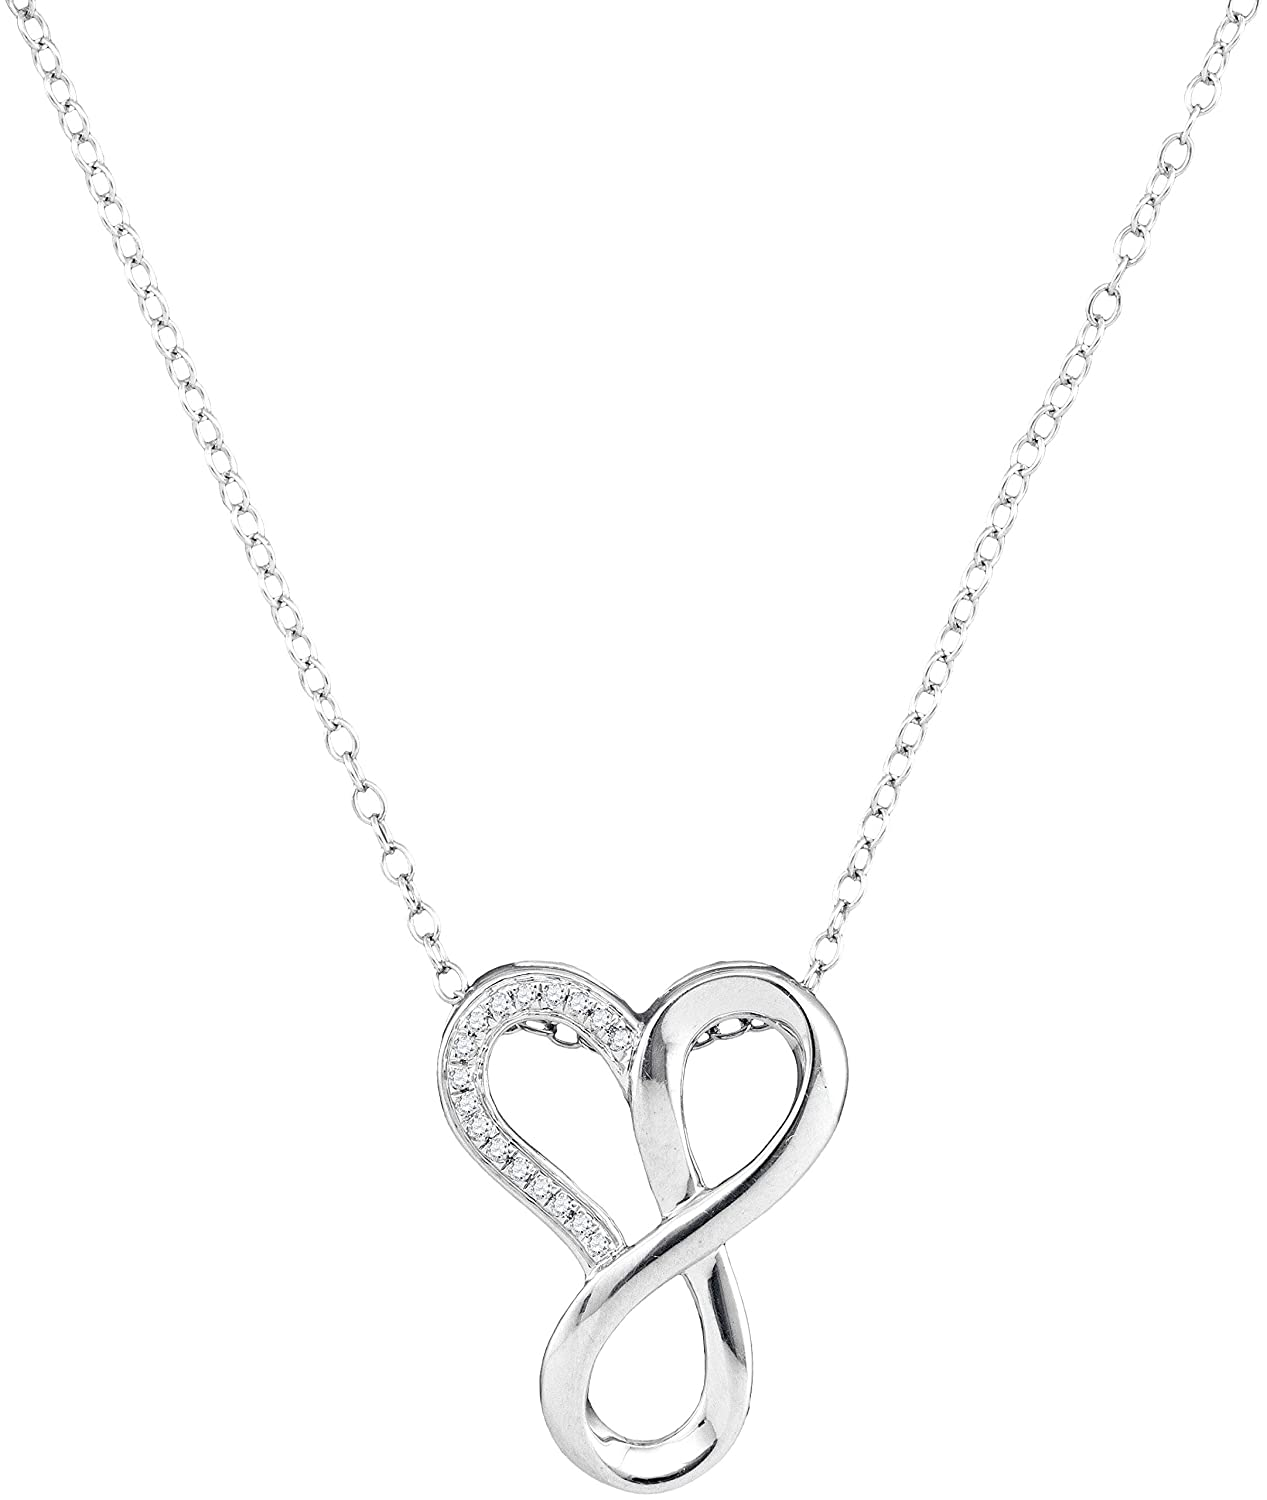 10kt White gold Womens Round Diamond Heart Infinity Pendant Necklace 1 20 Cttw